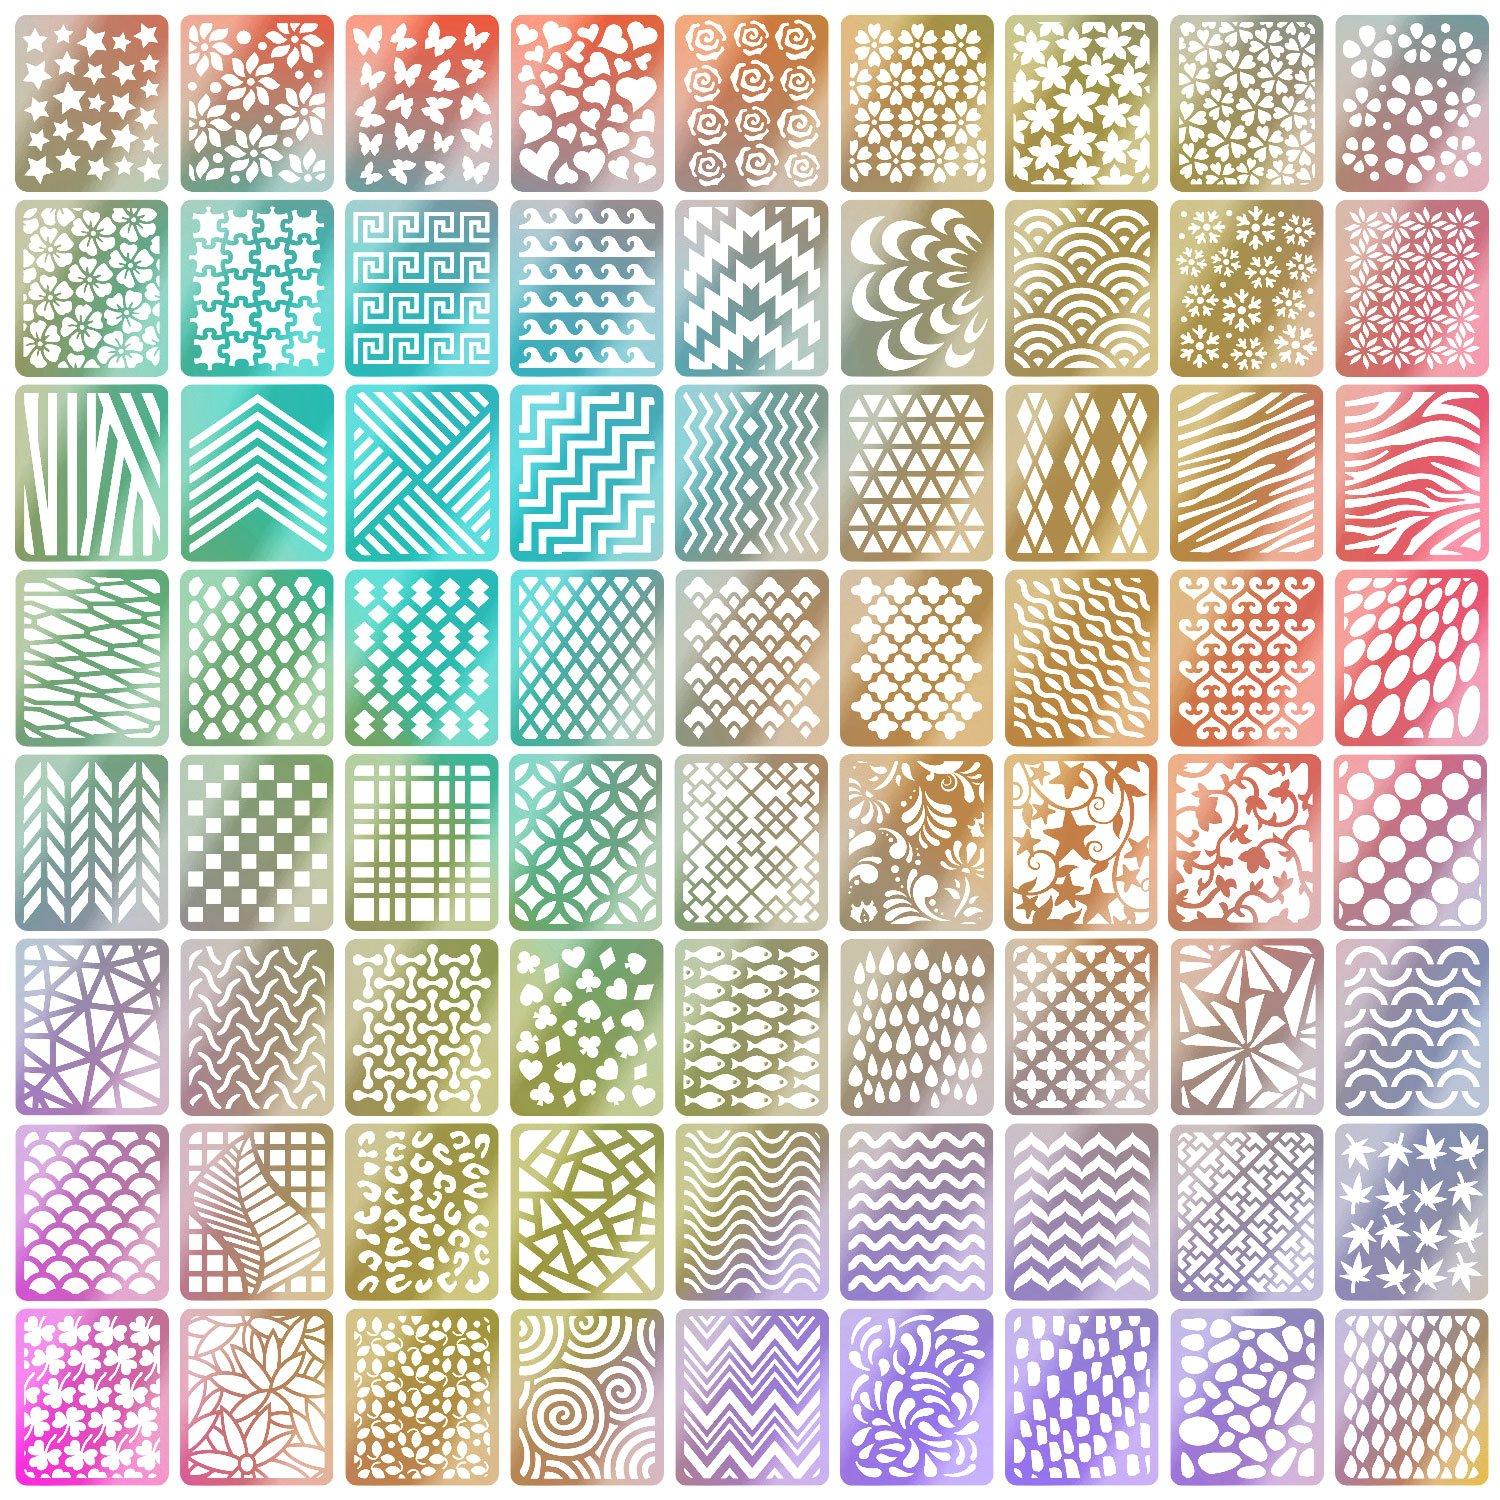 Amazon.com: eBoot 1275 Pieces 49 Designs Nail Art Stencils French ...